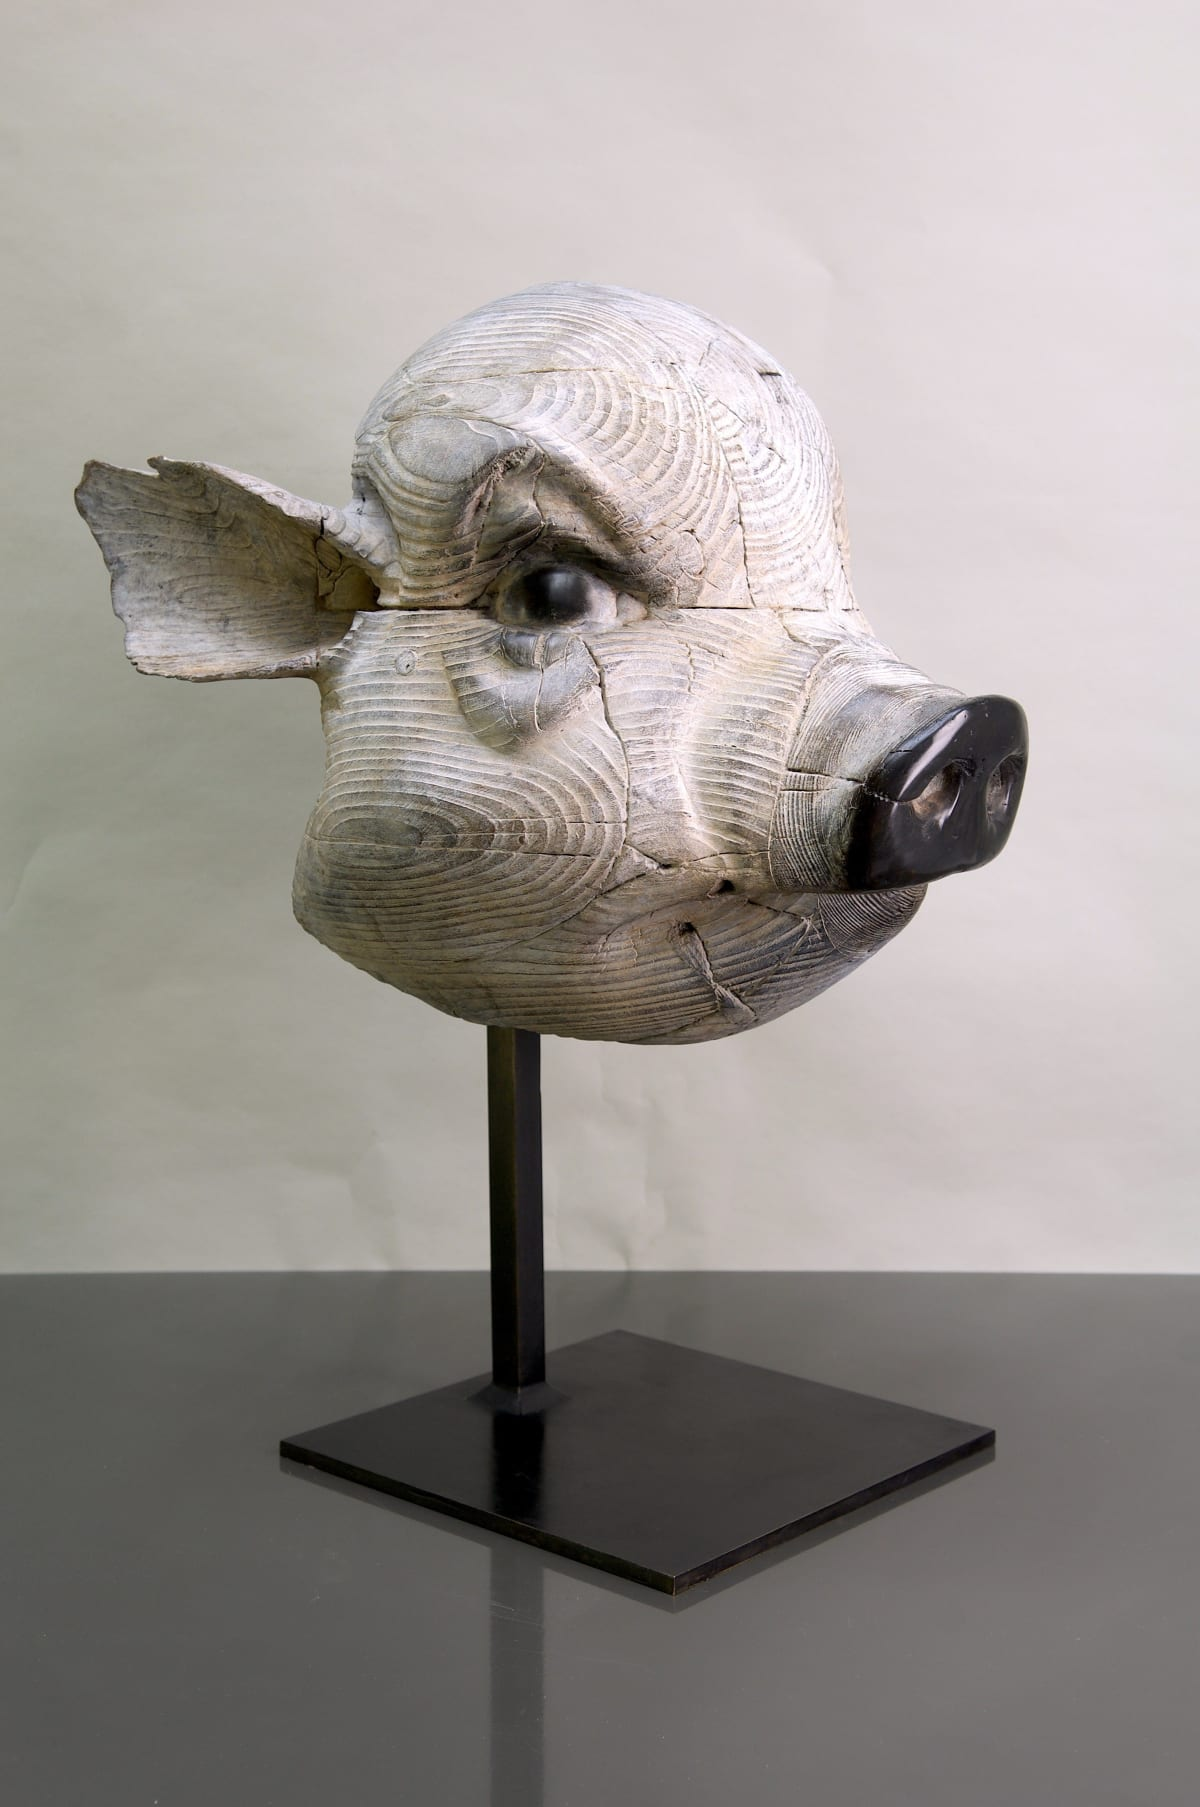 Quentin Garel, Mask of the Pig, 2017